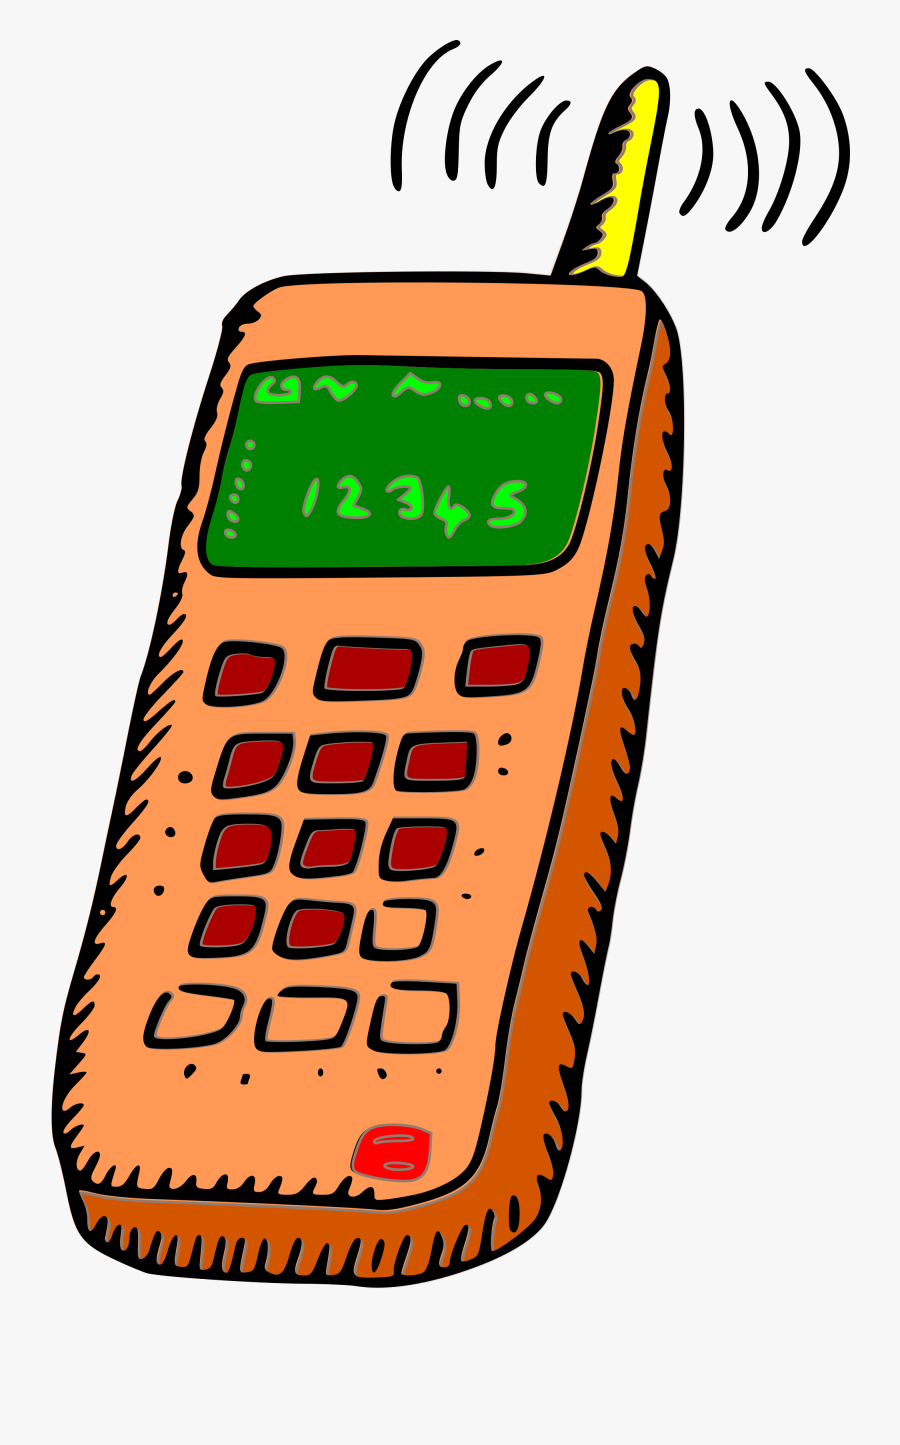 Phone Clipart Royalty Free - Cellphone Clipart, Transparent Clipart